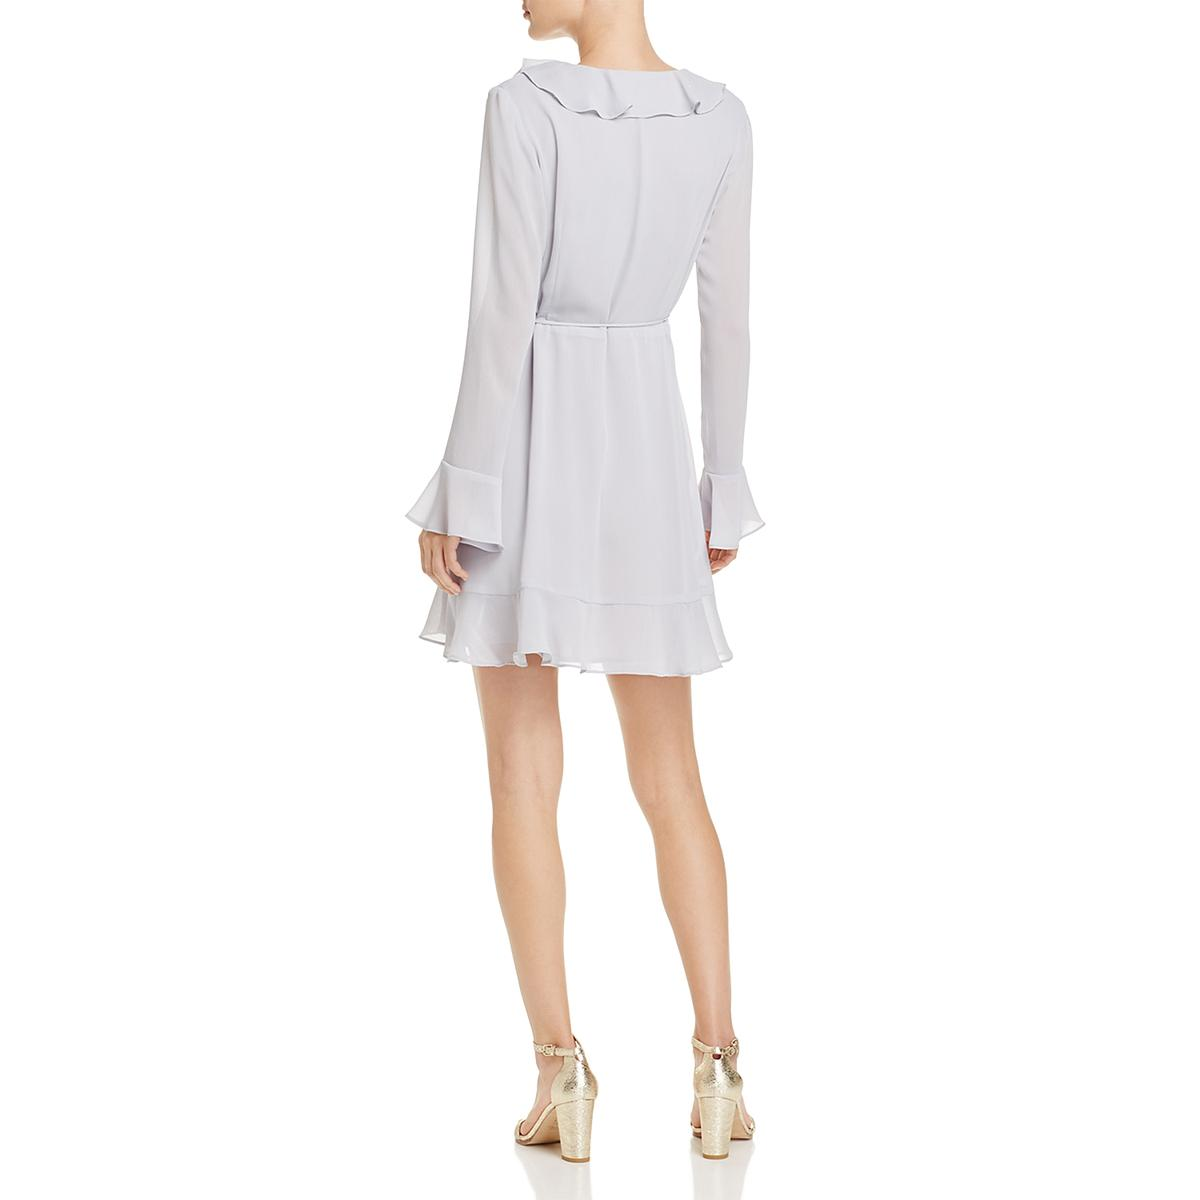 WAYF-Womens-Gabby-Bell-Sleeves-Ruffled-Wrap-Mini-Dress-BHFO-5149 thumbnail 6